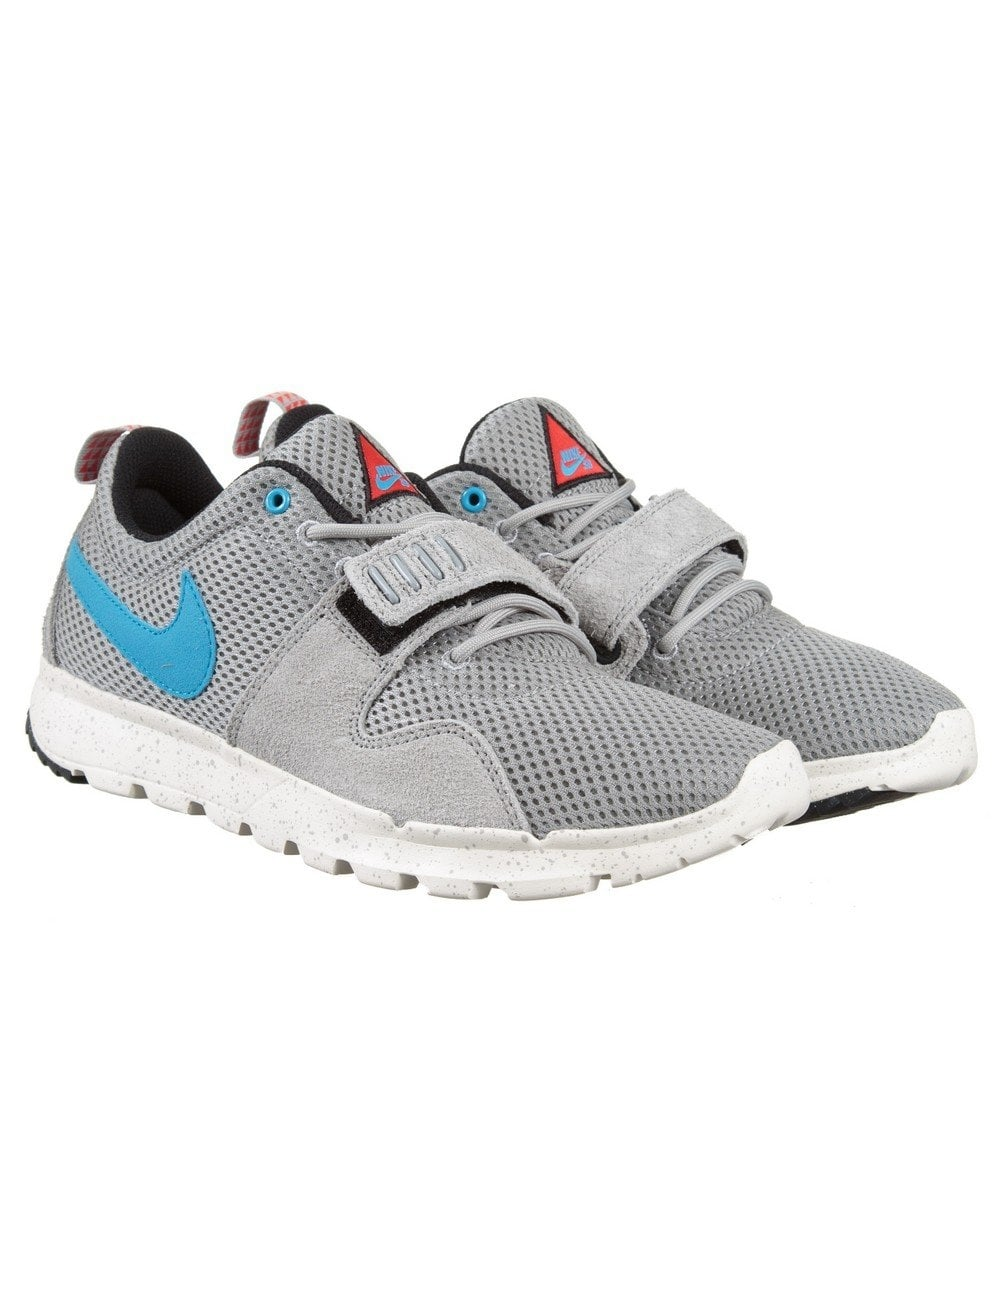 11ccd1fb69c5 Nike SB Trainerendor Trainers - Base Grey/Vivid Blue - Footwear from ...